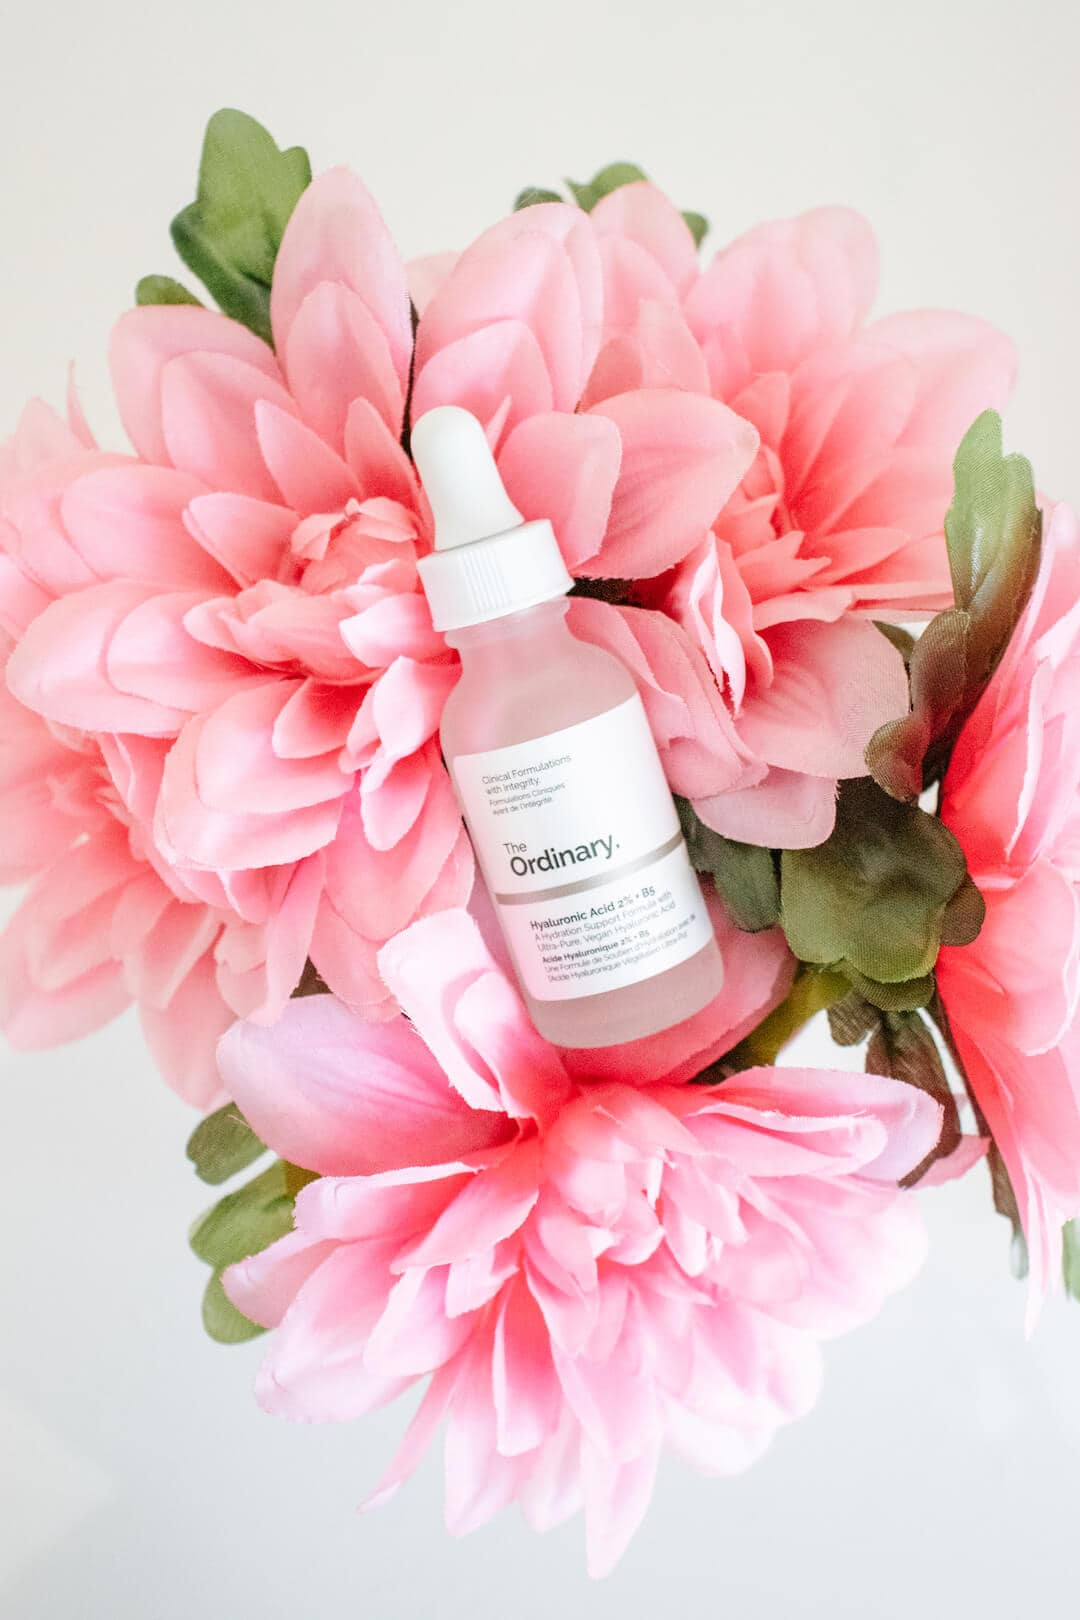 The Ordinary Hyaluronic Acid 2% + B5 Review